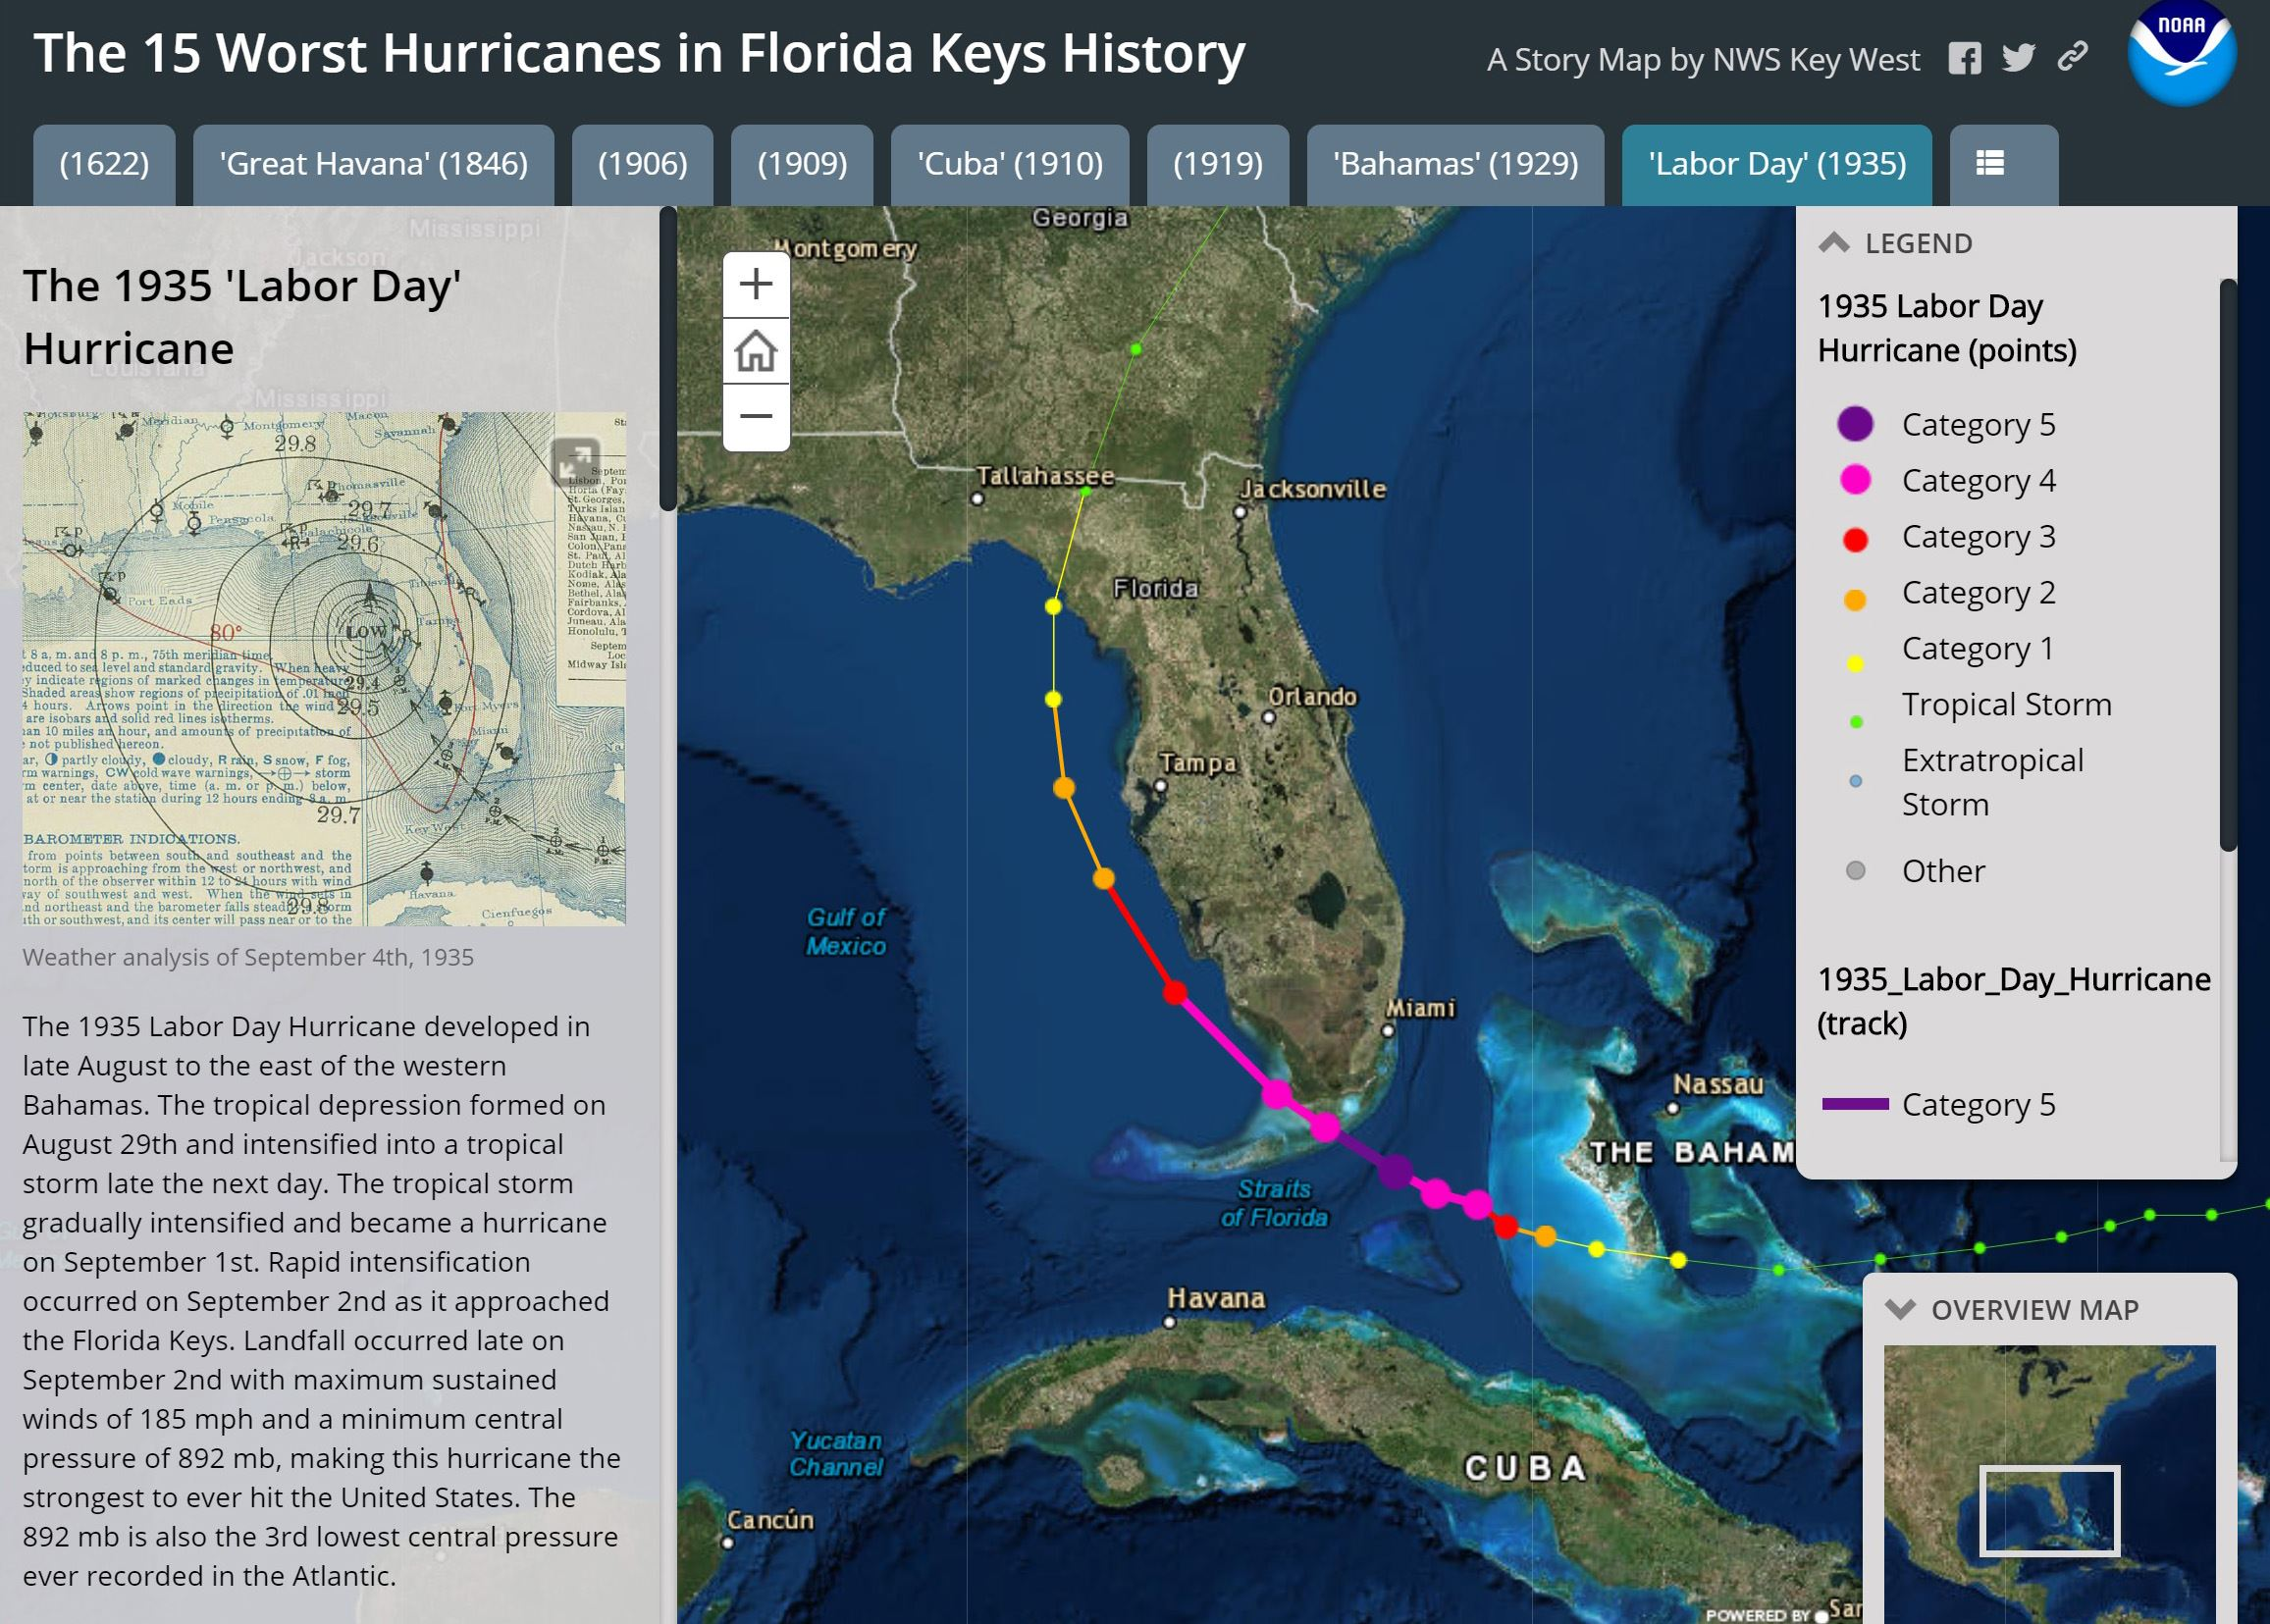 Photo of NOAA's Labor Day Hurricane Page of 15 Top Hurricanes in the Keys